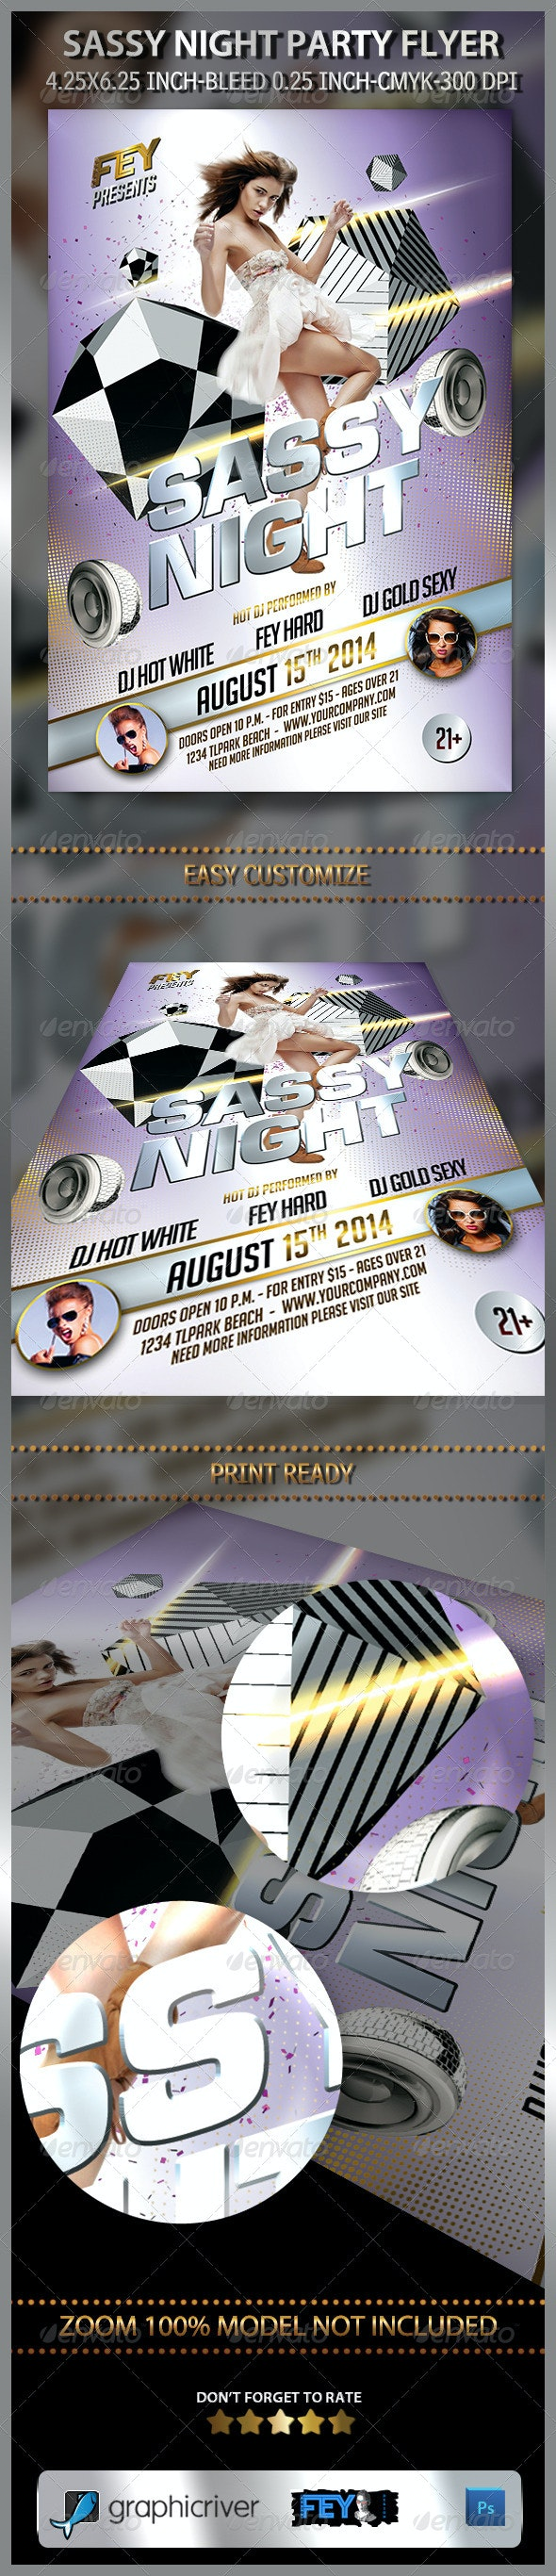 Sassy Night Party Flyer - Clubs & Parties Events